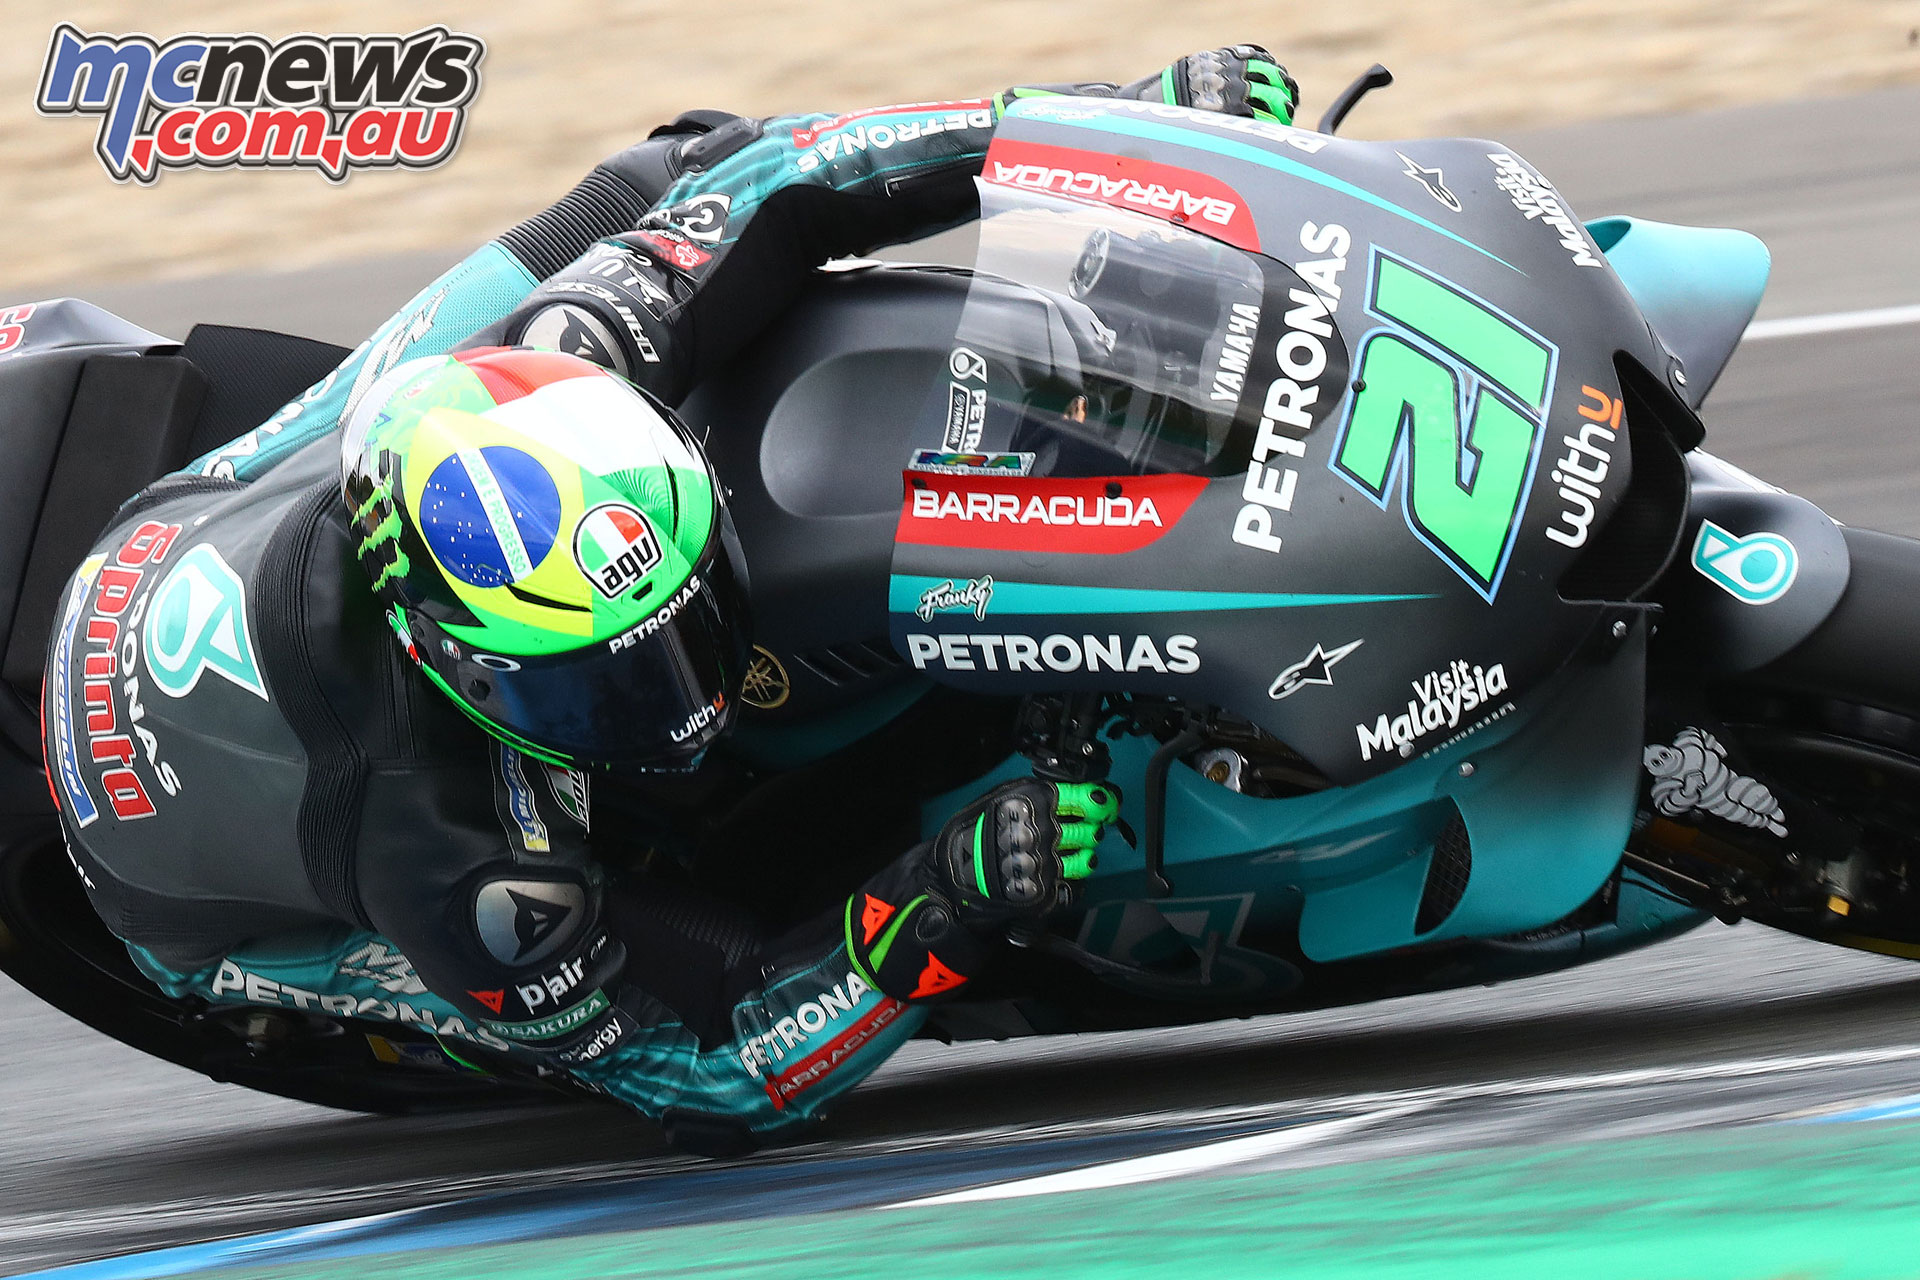 MotoGP Test Jerez D Nov Franco Morbidelli